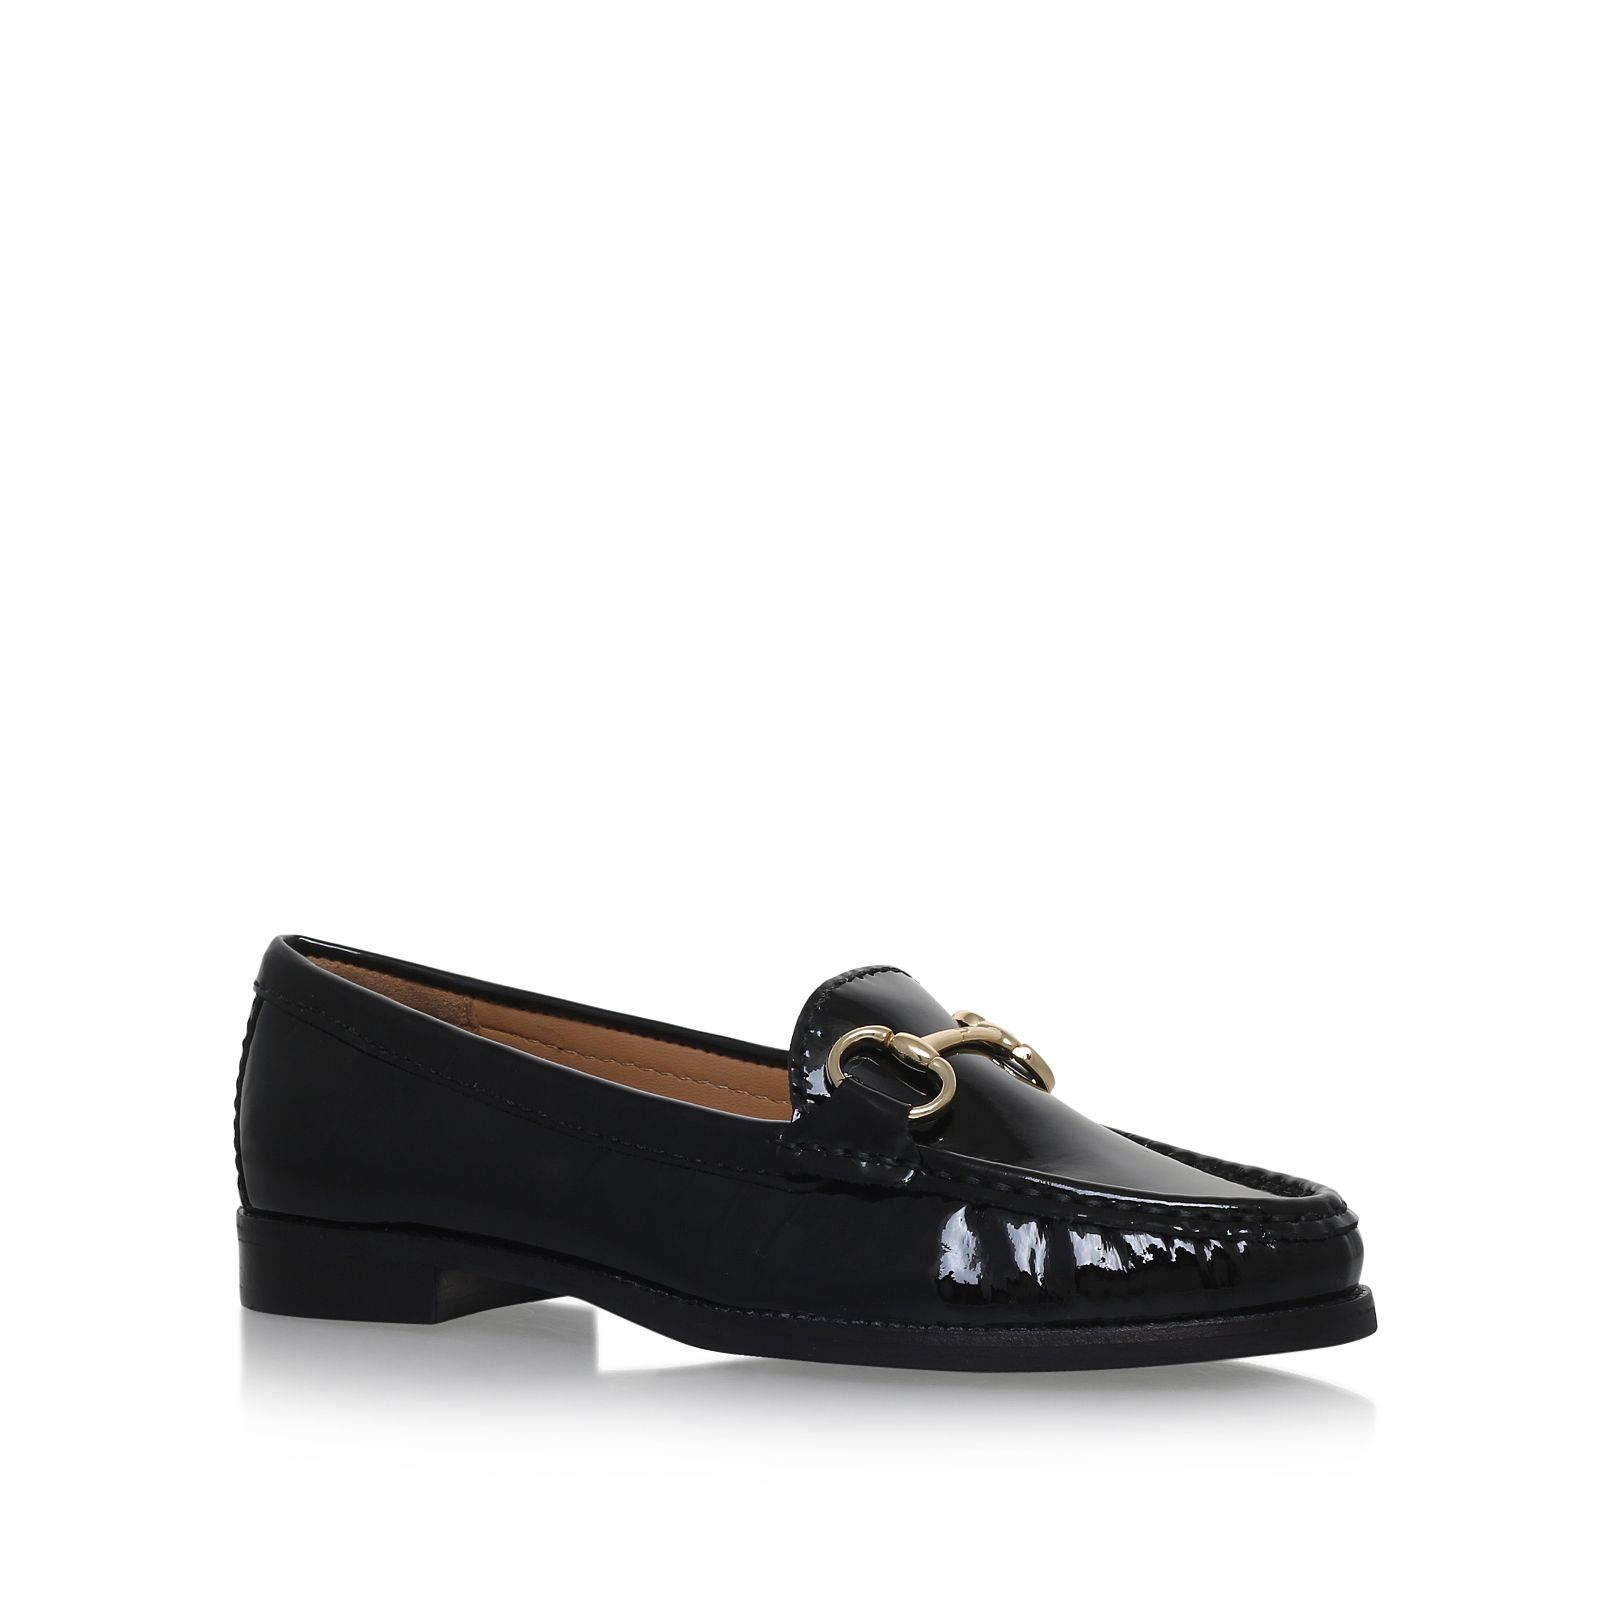 Carvela Comfort Click 2 slip on loafers, Black